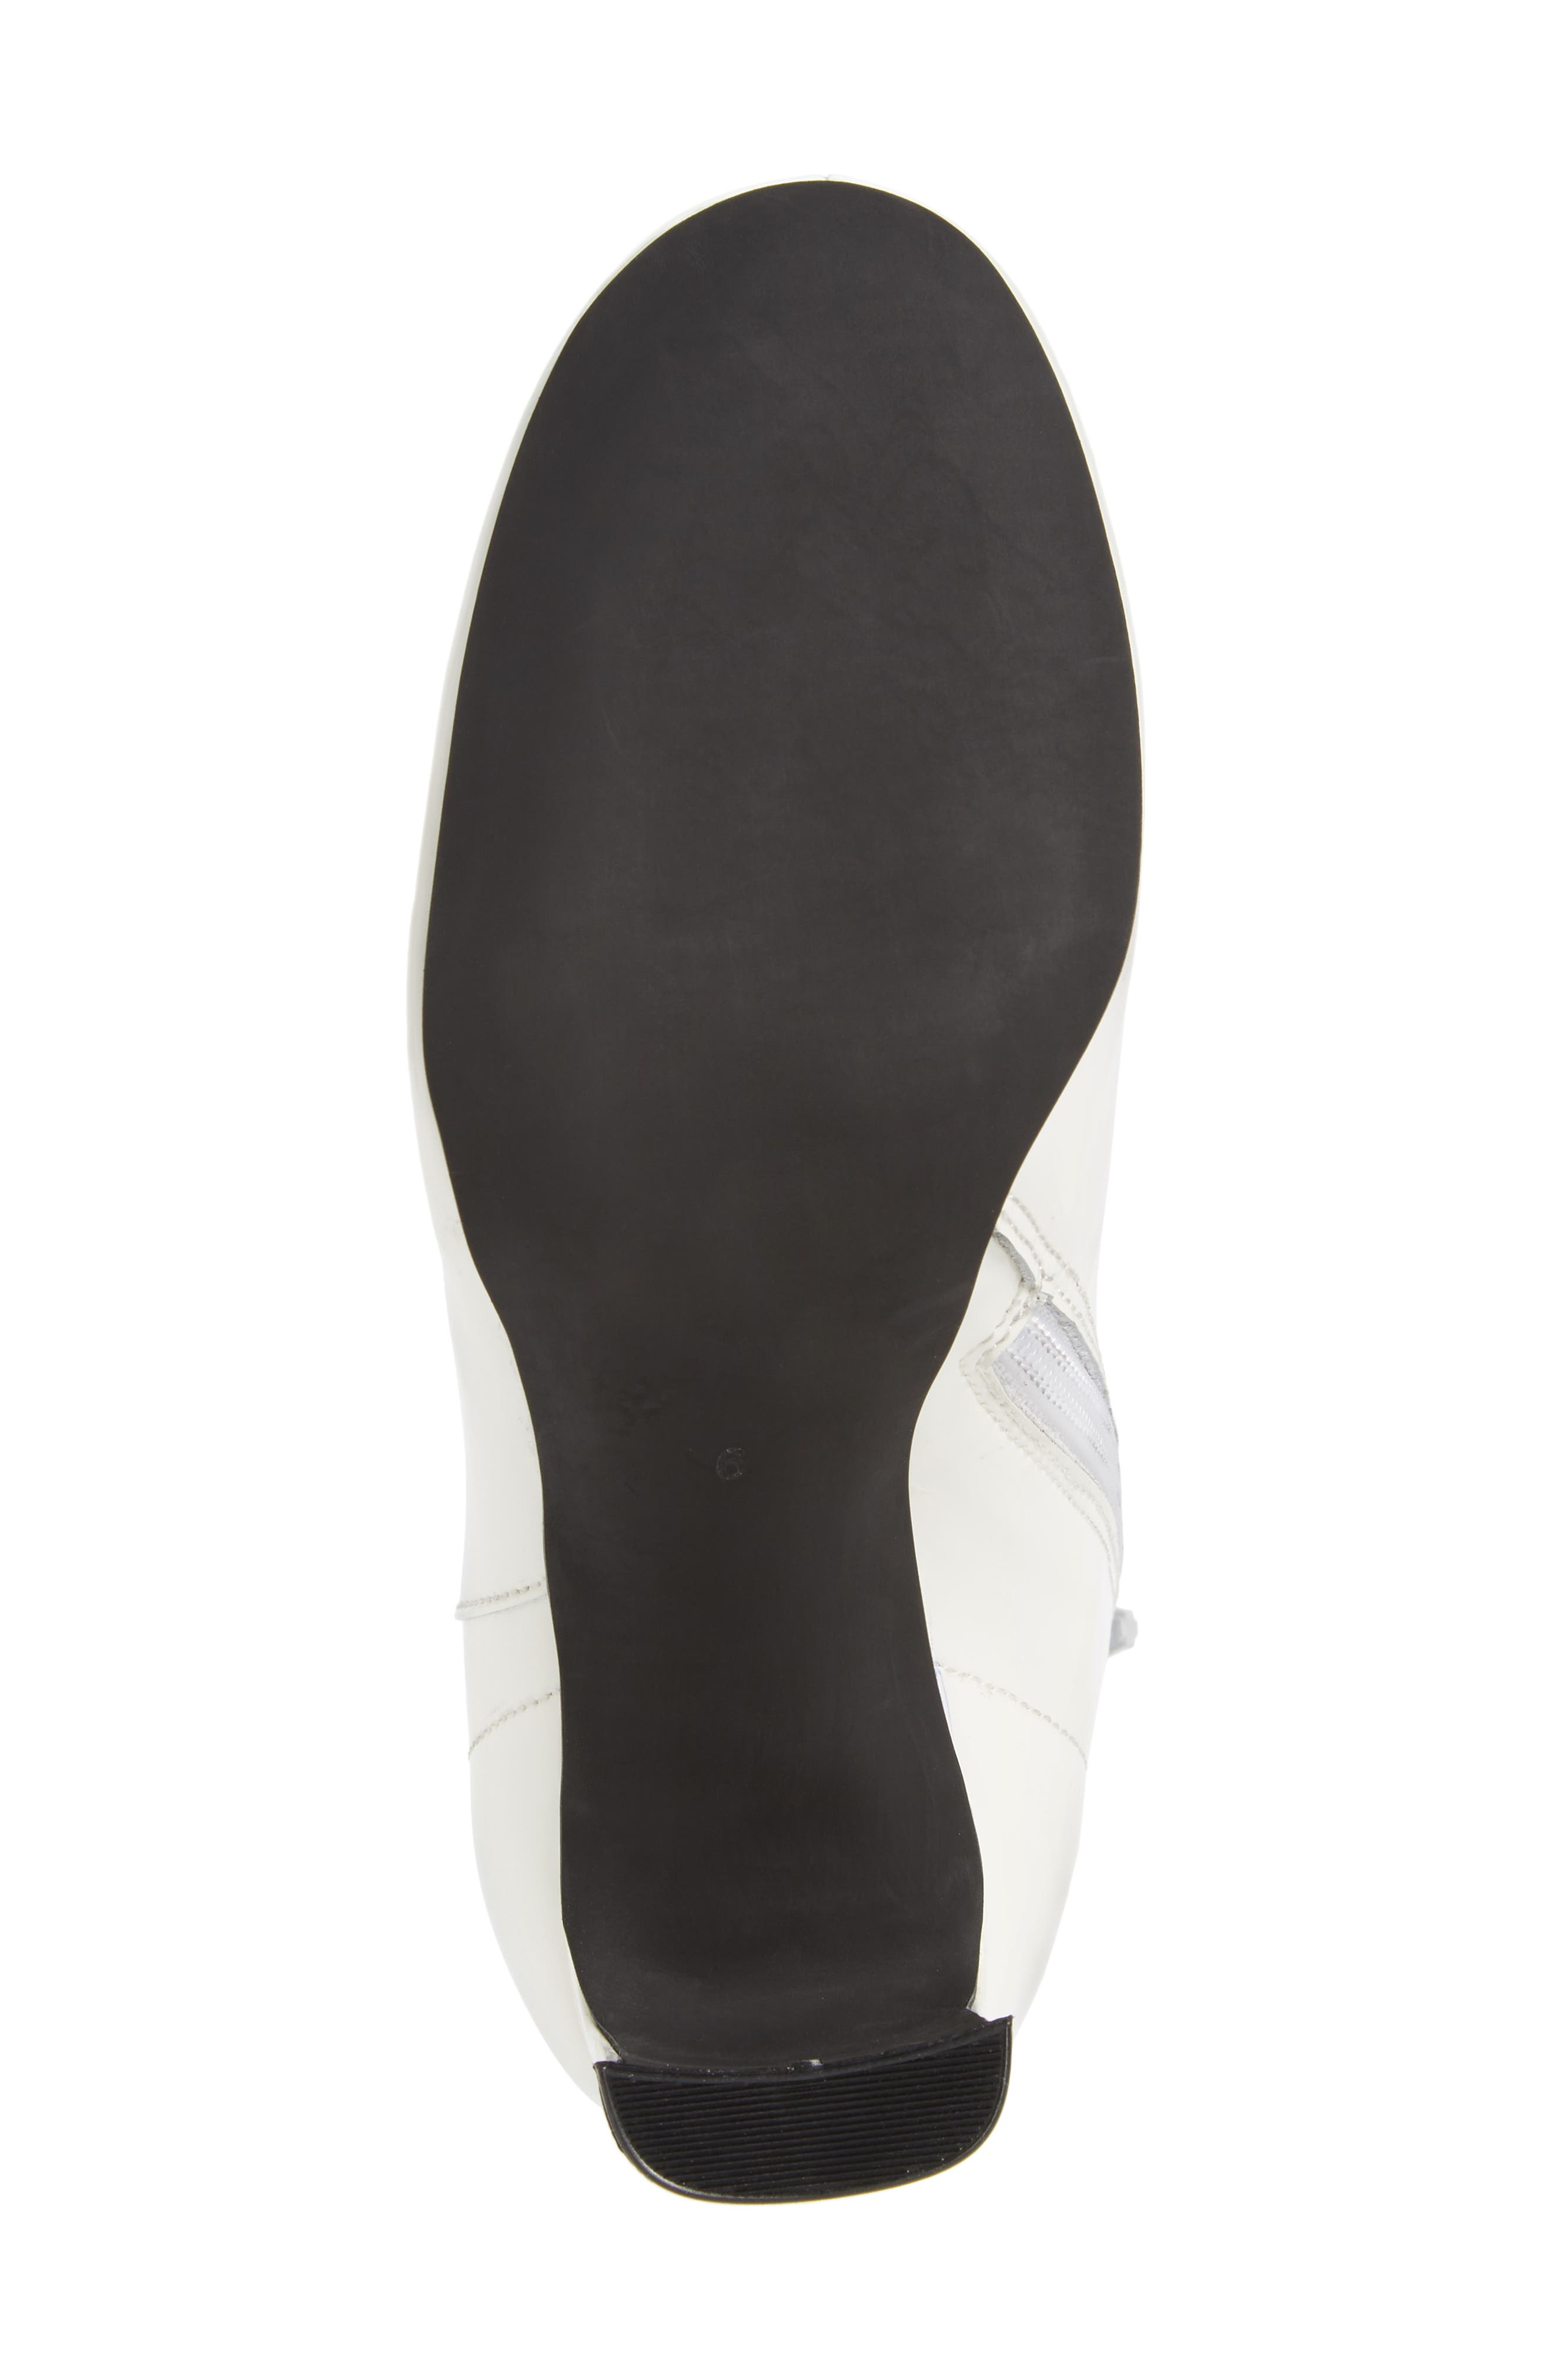 Chapel Curved Heel Bootie,                             Alternate thumbnail 6, color,                             White Patent Leather